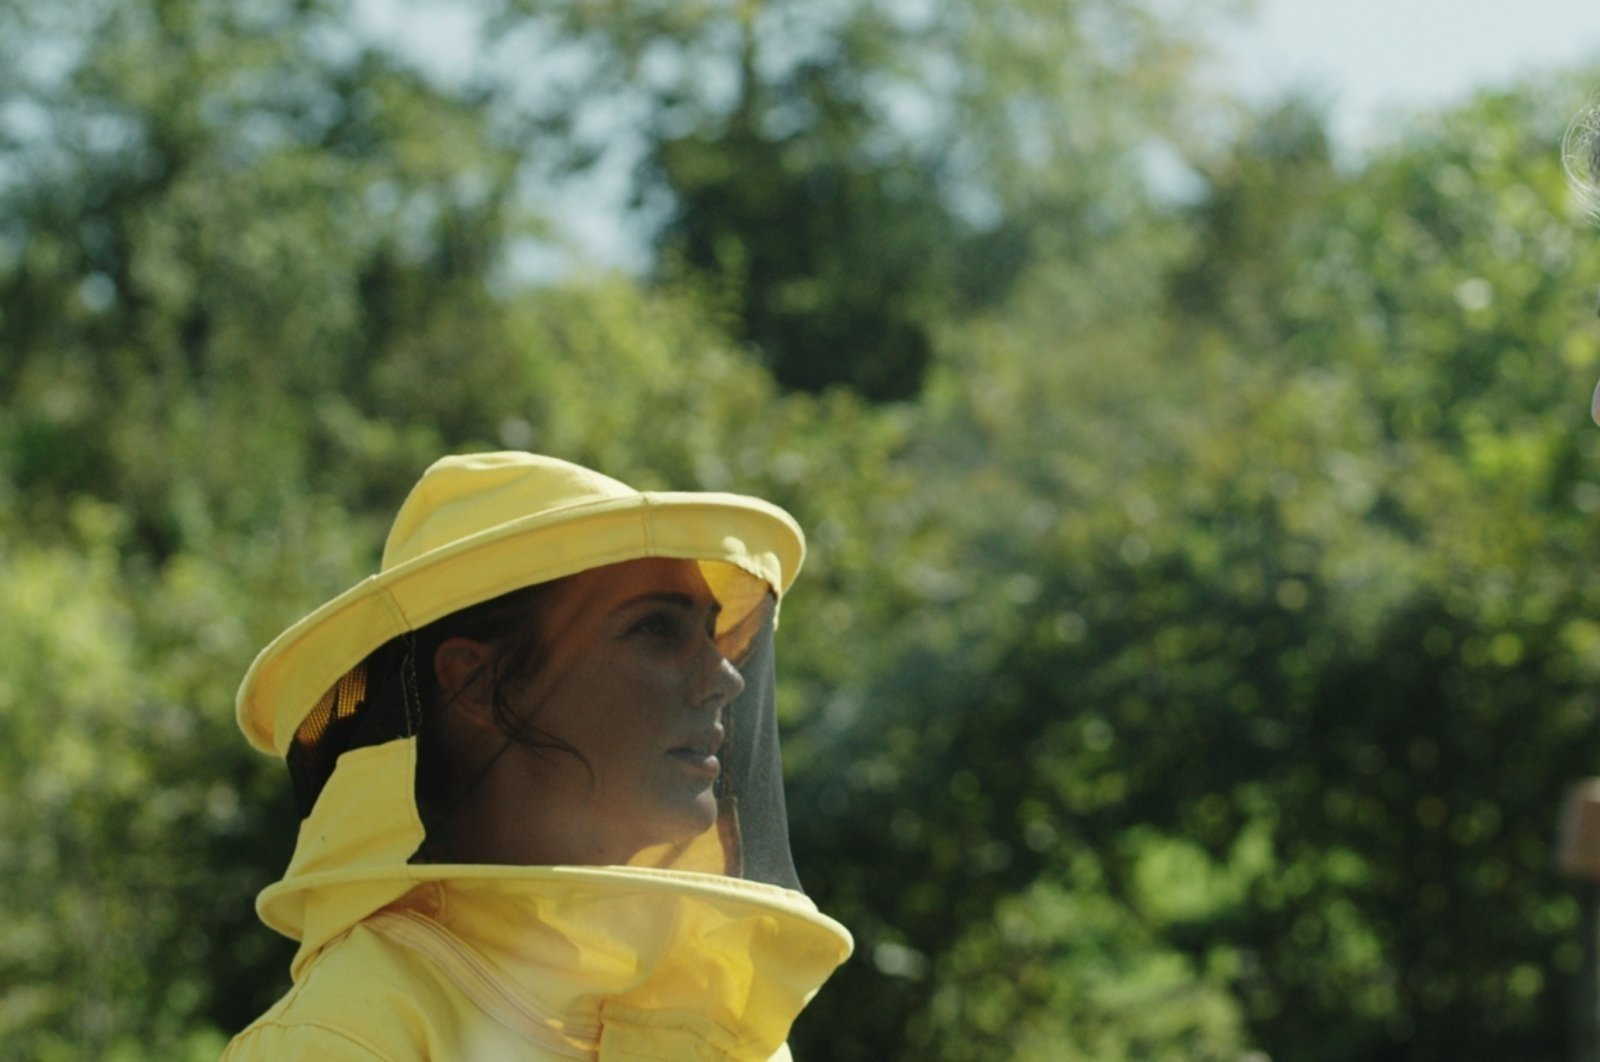 """Meryem Uzerli as Ayşe in a still from """"Kovan"""" (""""The Hive"""")."""